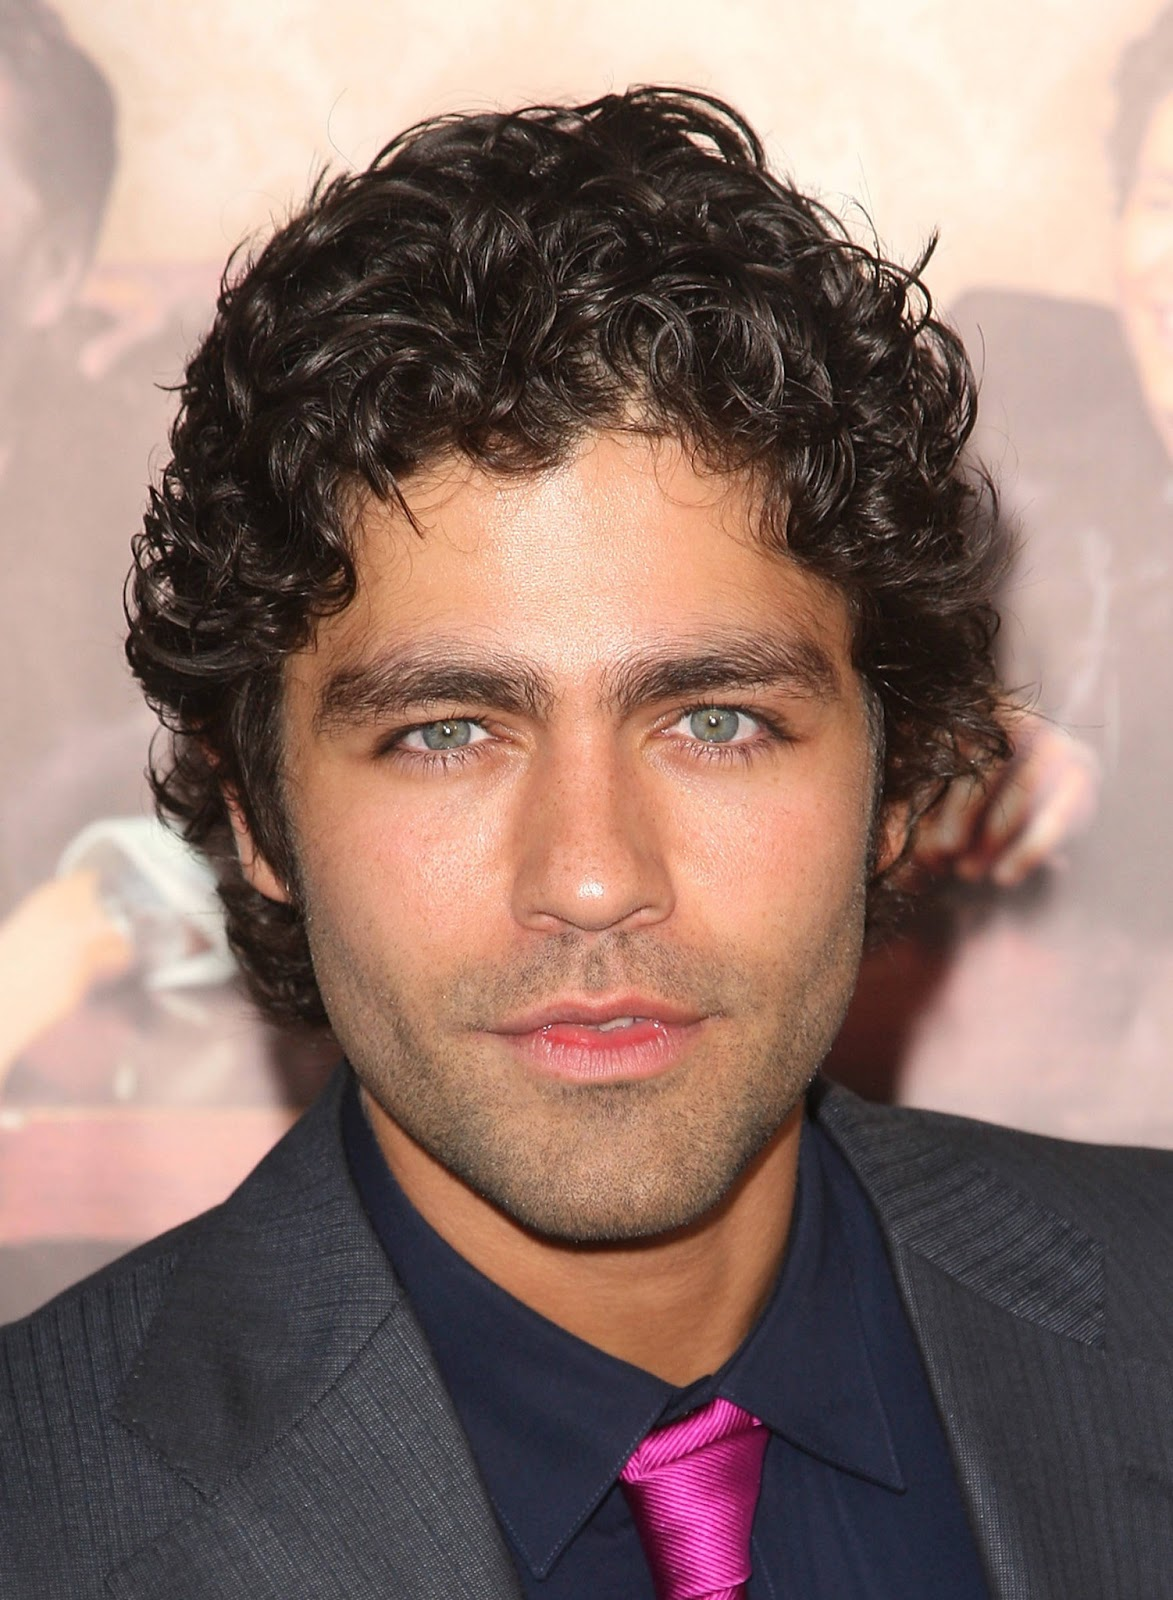 Hairstyles For Men With Curly Hair | Hair Style